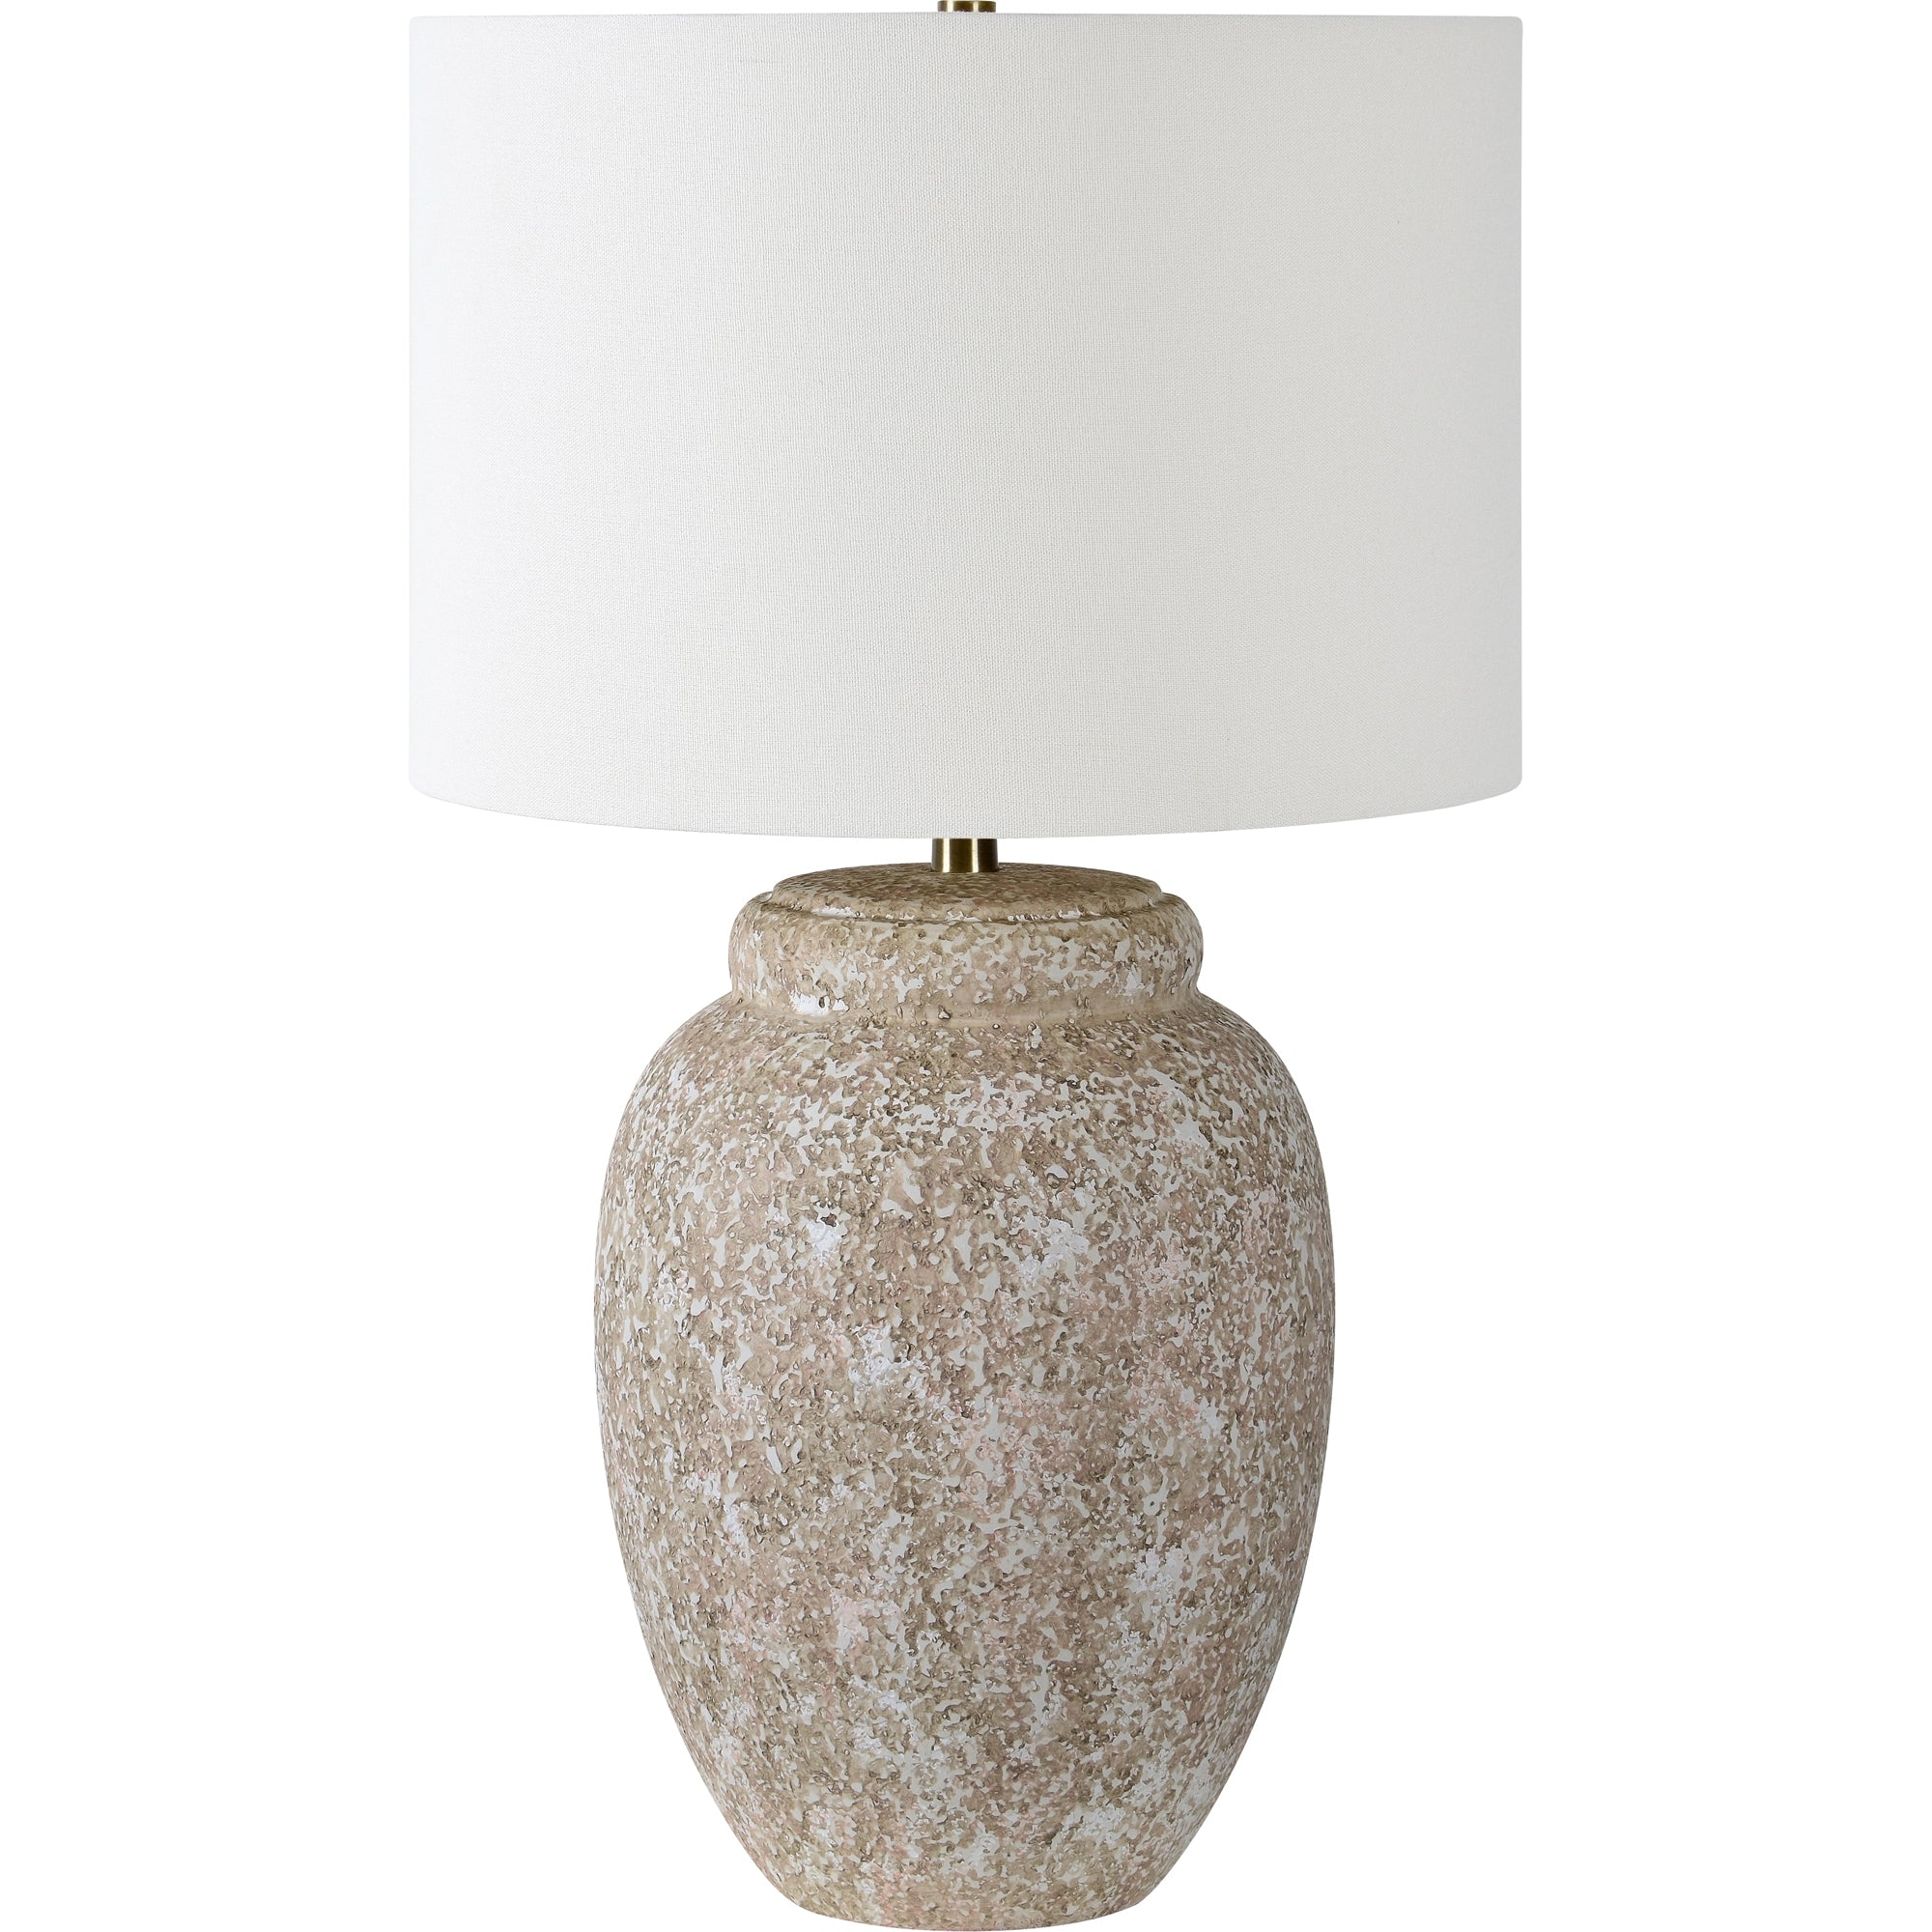 Asha Table Lamp - Rug & Weave